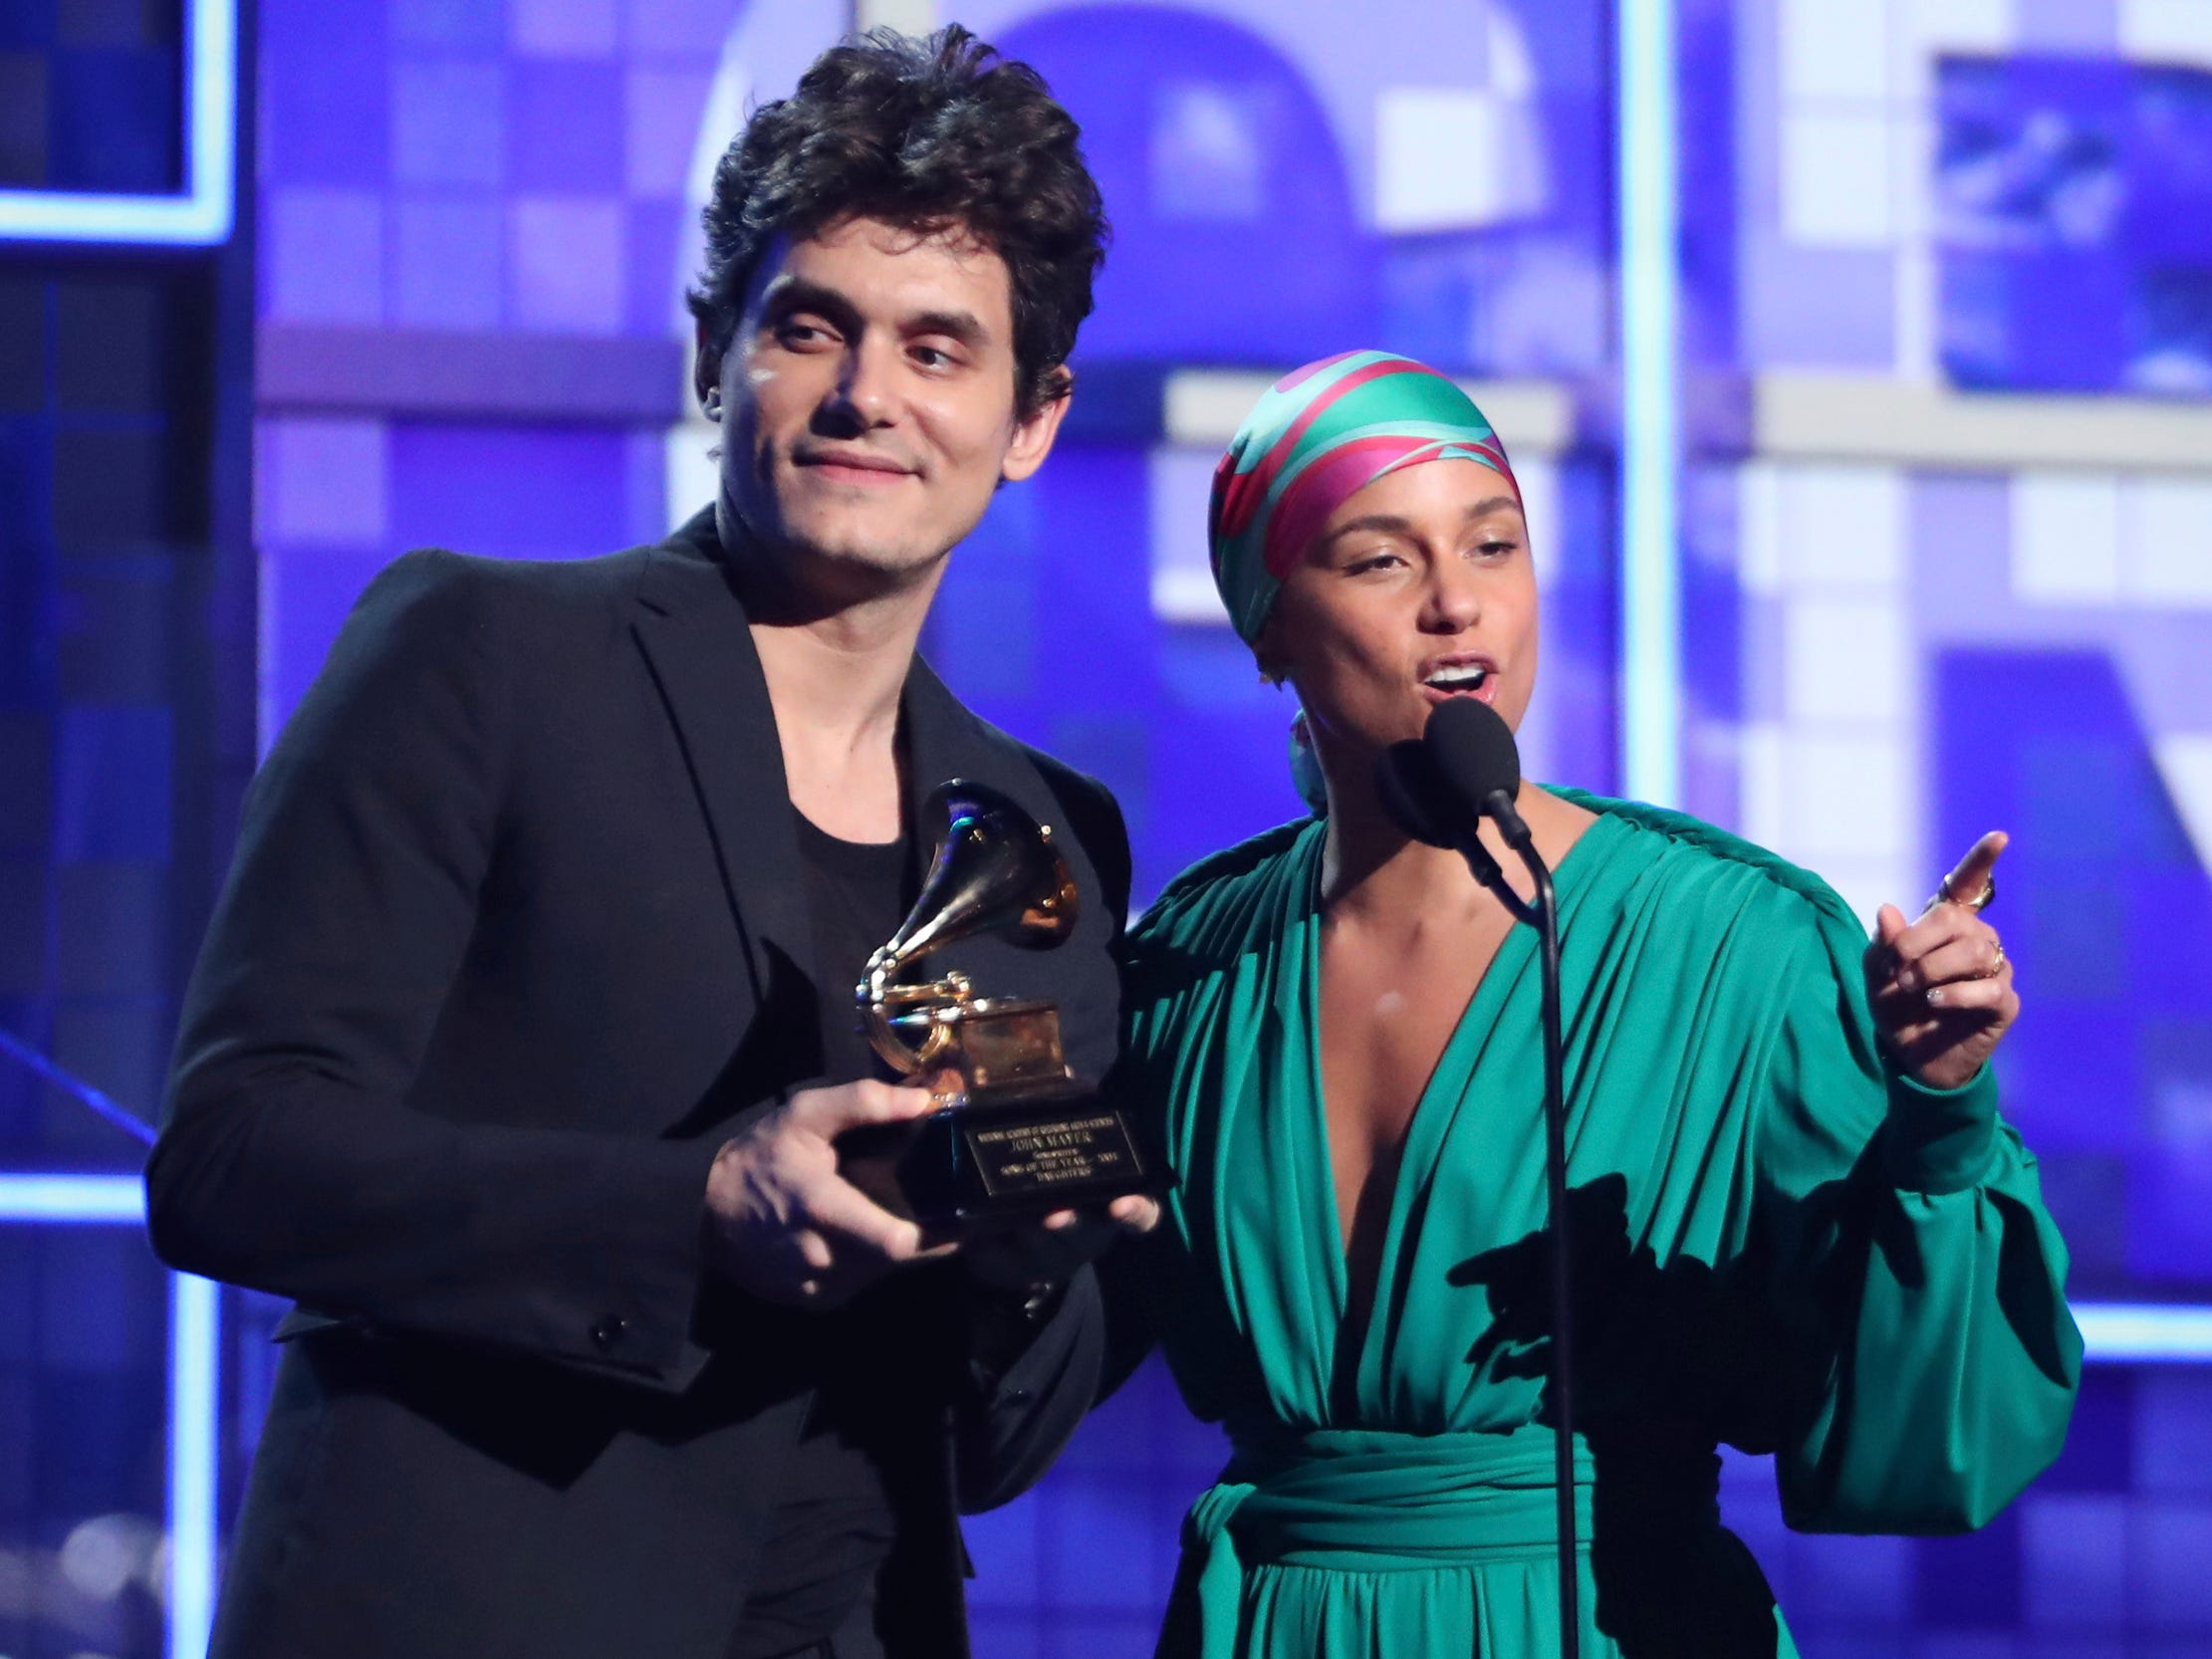 John Mayer, left, and Alicia Keys present the award for song of the year at the 61st annual Grammy Awards on Sunday, Feb. 10, 2019, in Los Angeles.